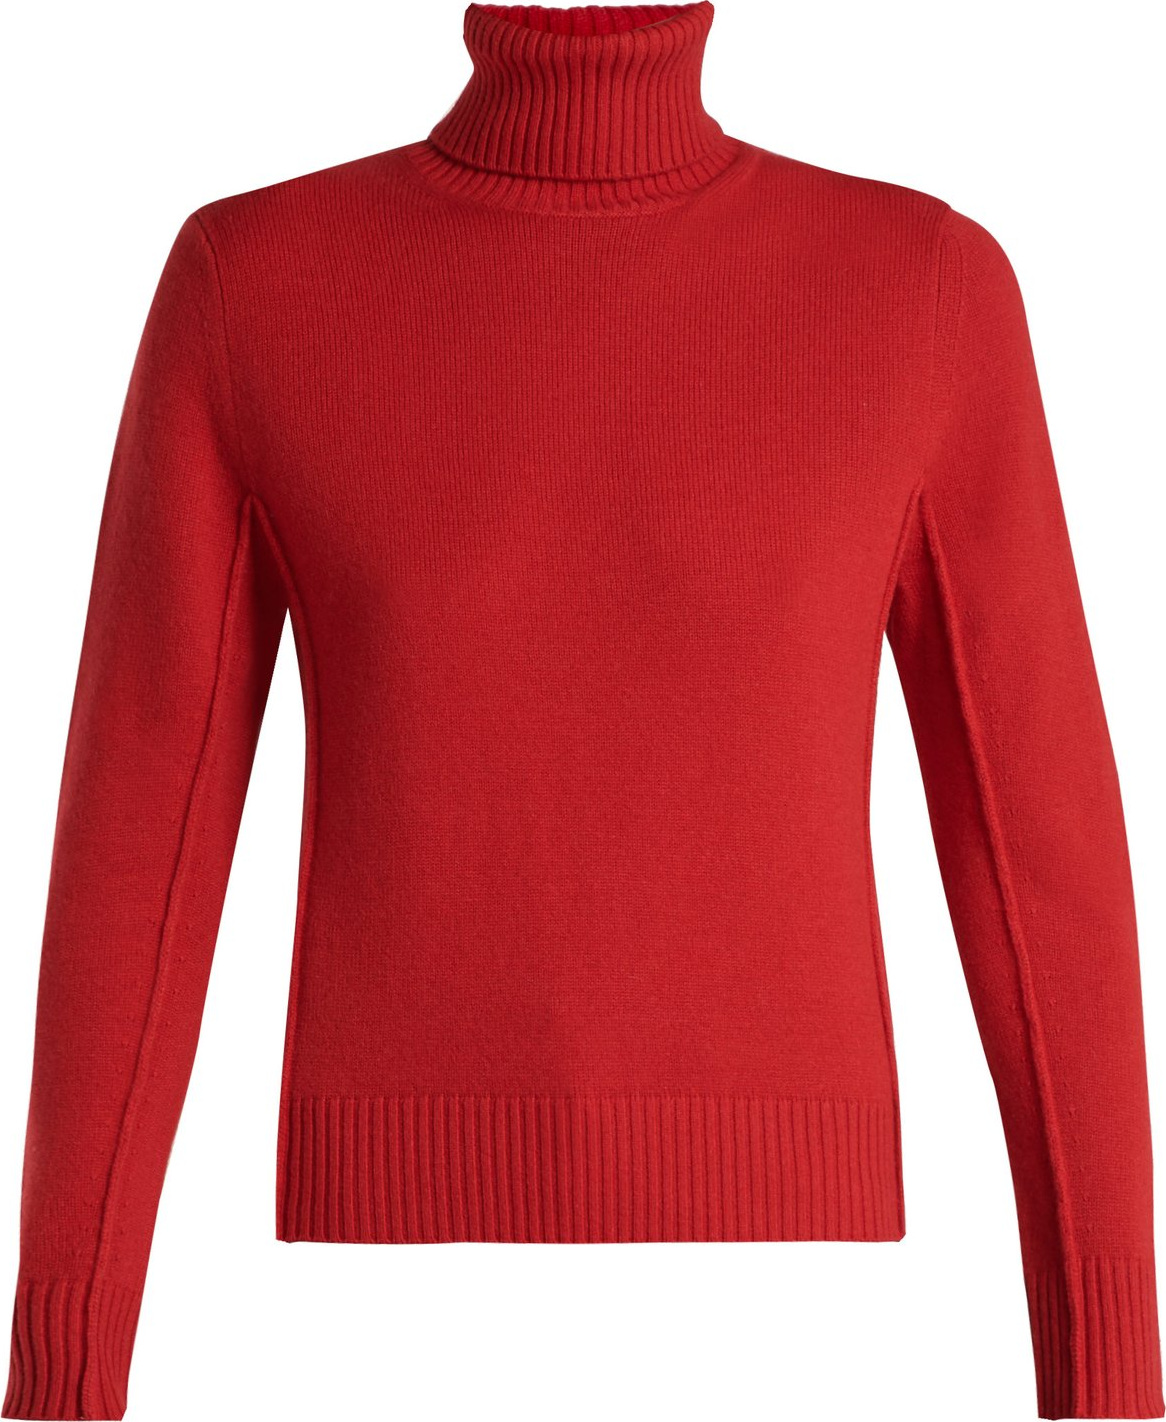 Chloe - Cashmere roll-neck sweater